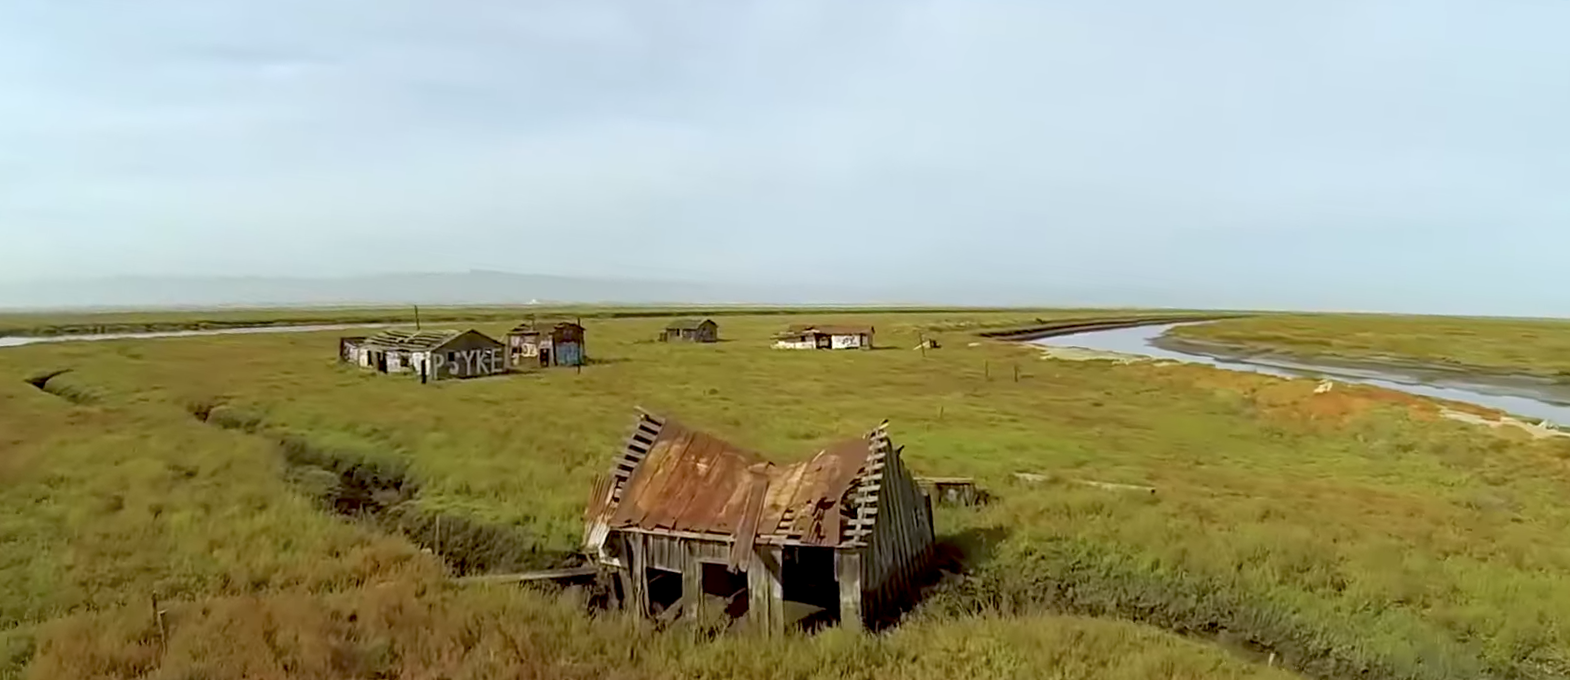 LISTEN: The Island Ghost Town in the Middle of San Francisco Bay